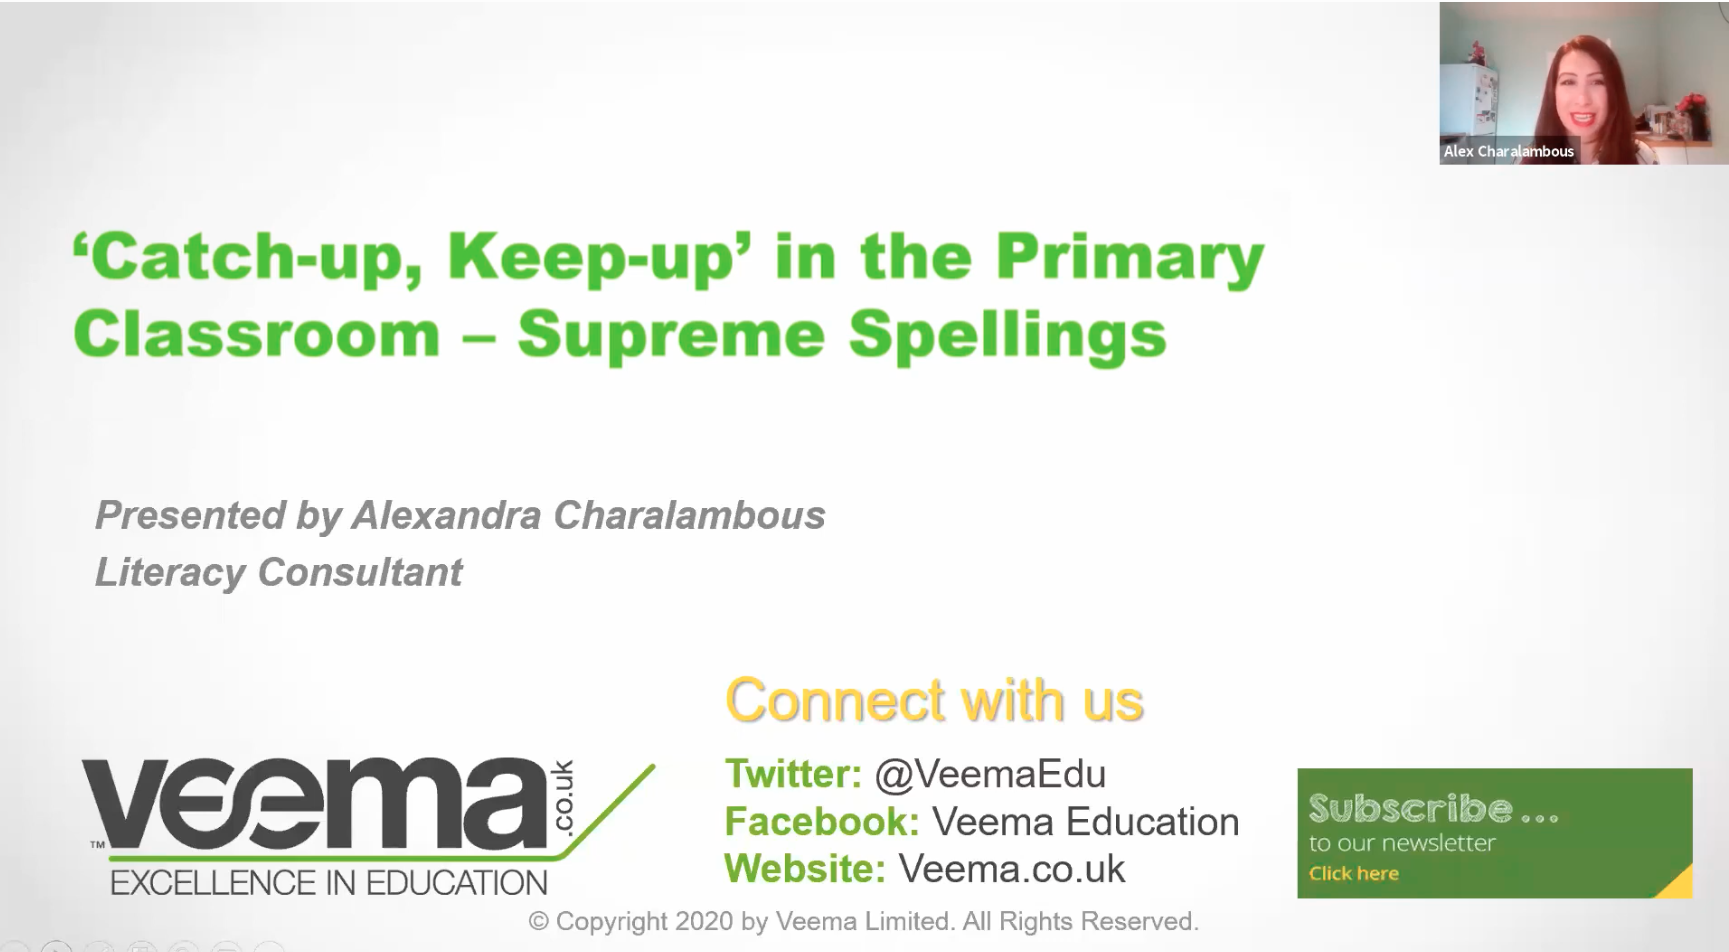 'Catch-up, Keep-up' in the Primary Classroom –Supreme Spellings